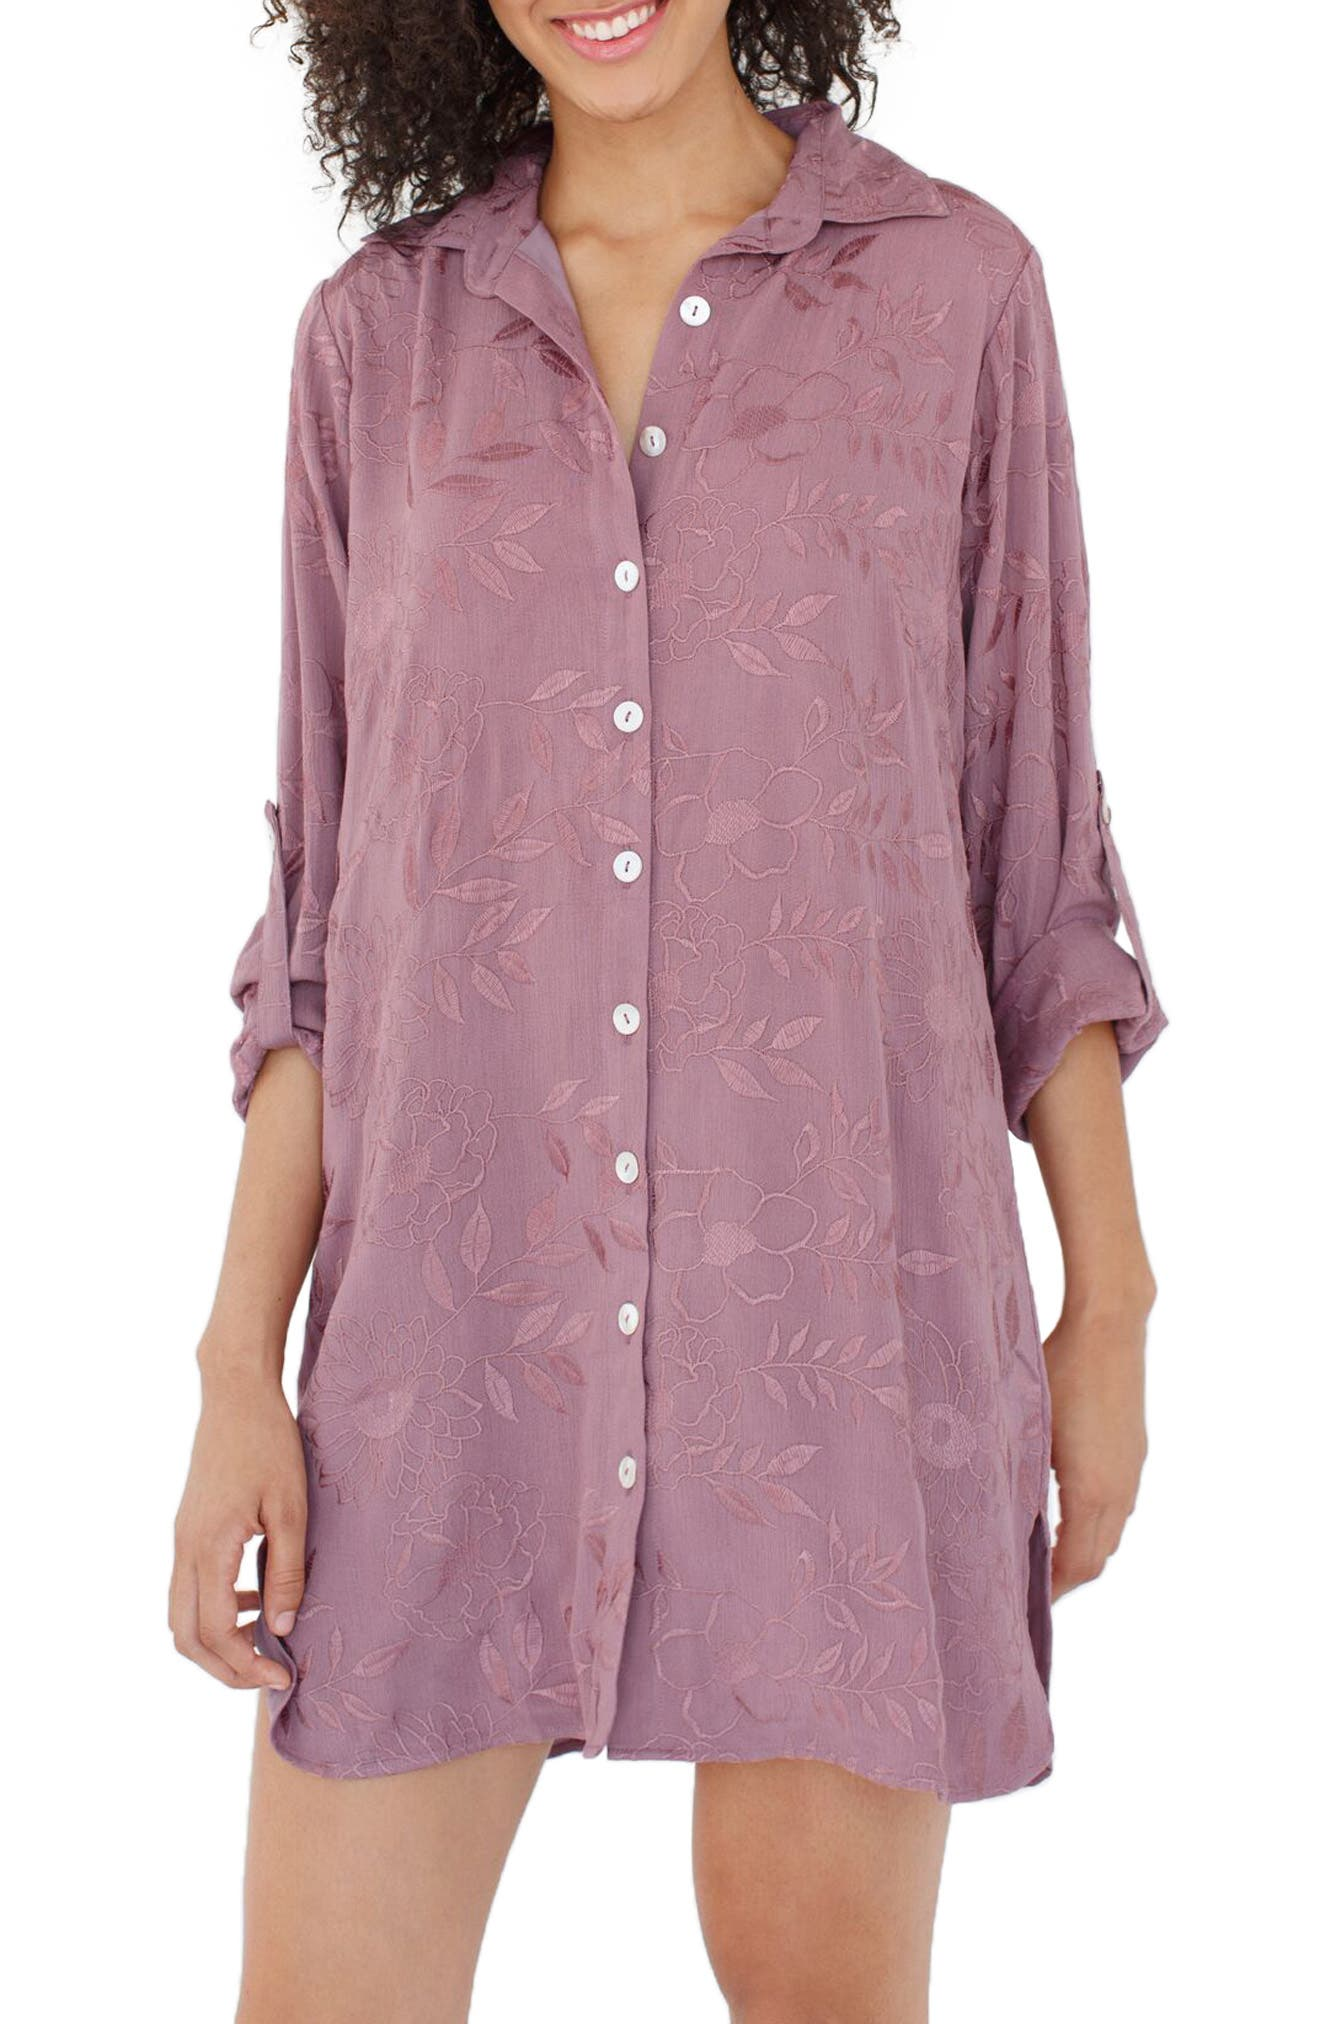 Floral Embroidered Nightshirt,                         Main,                         color, Love In Her Heart